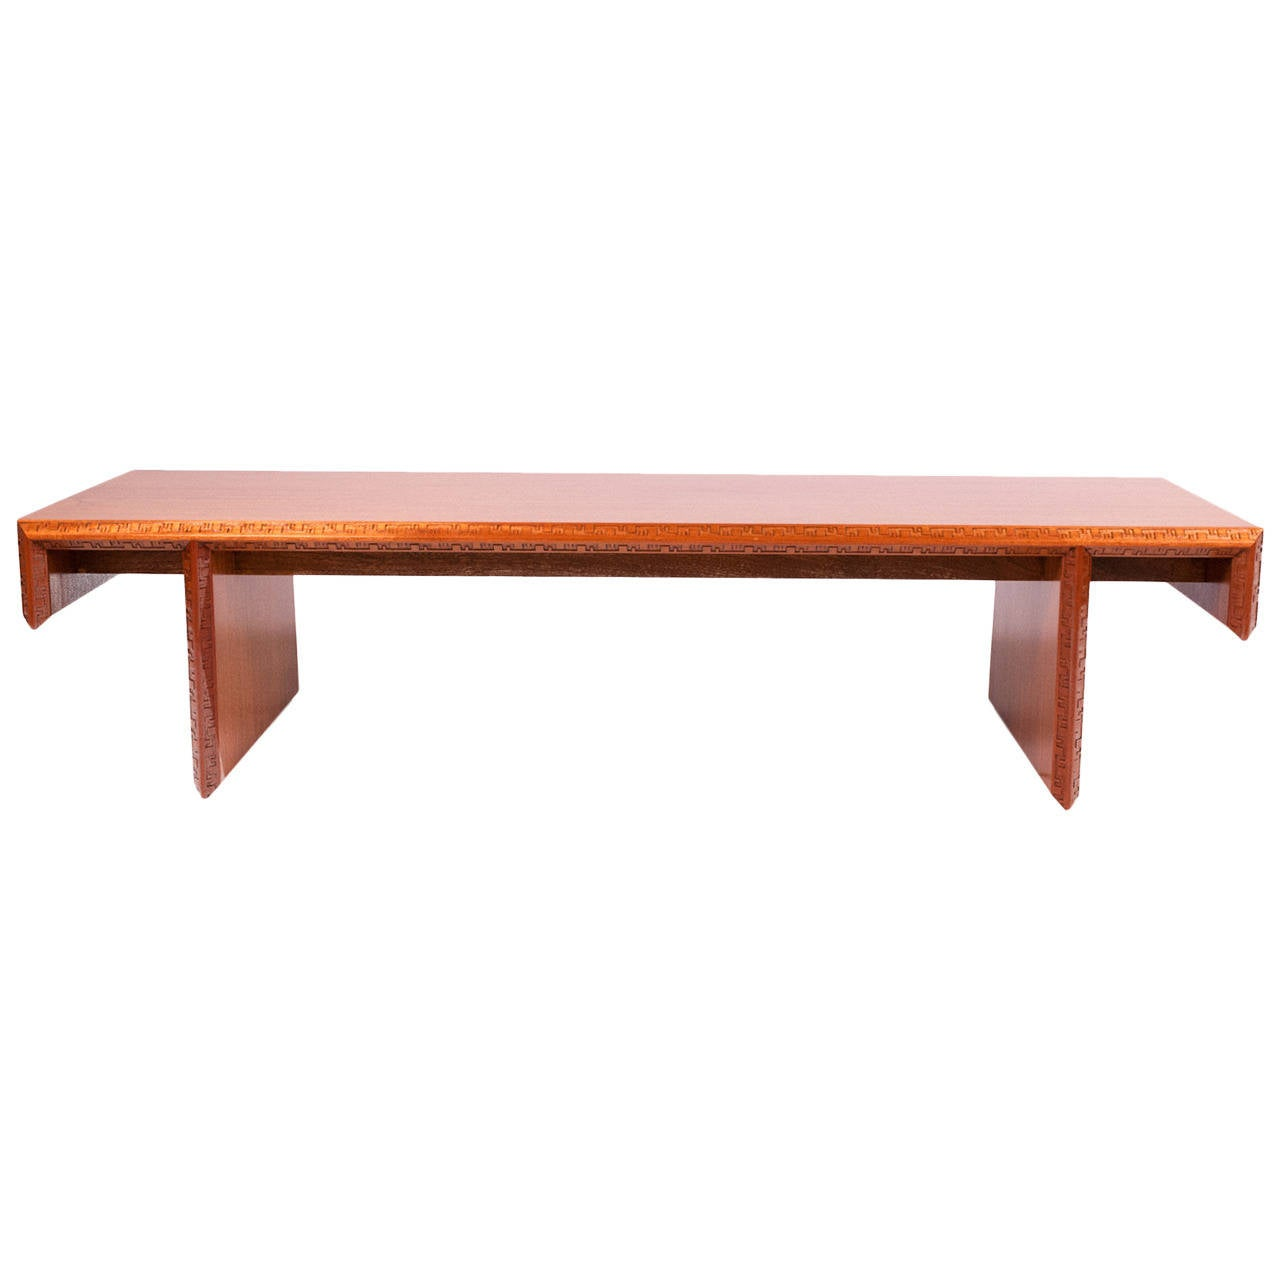 Frank Lloyd Wright Mahogany Coffee Table Or Bench At 1stdibs